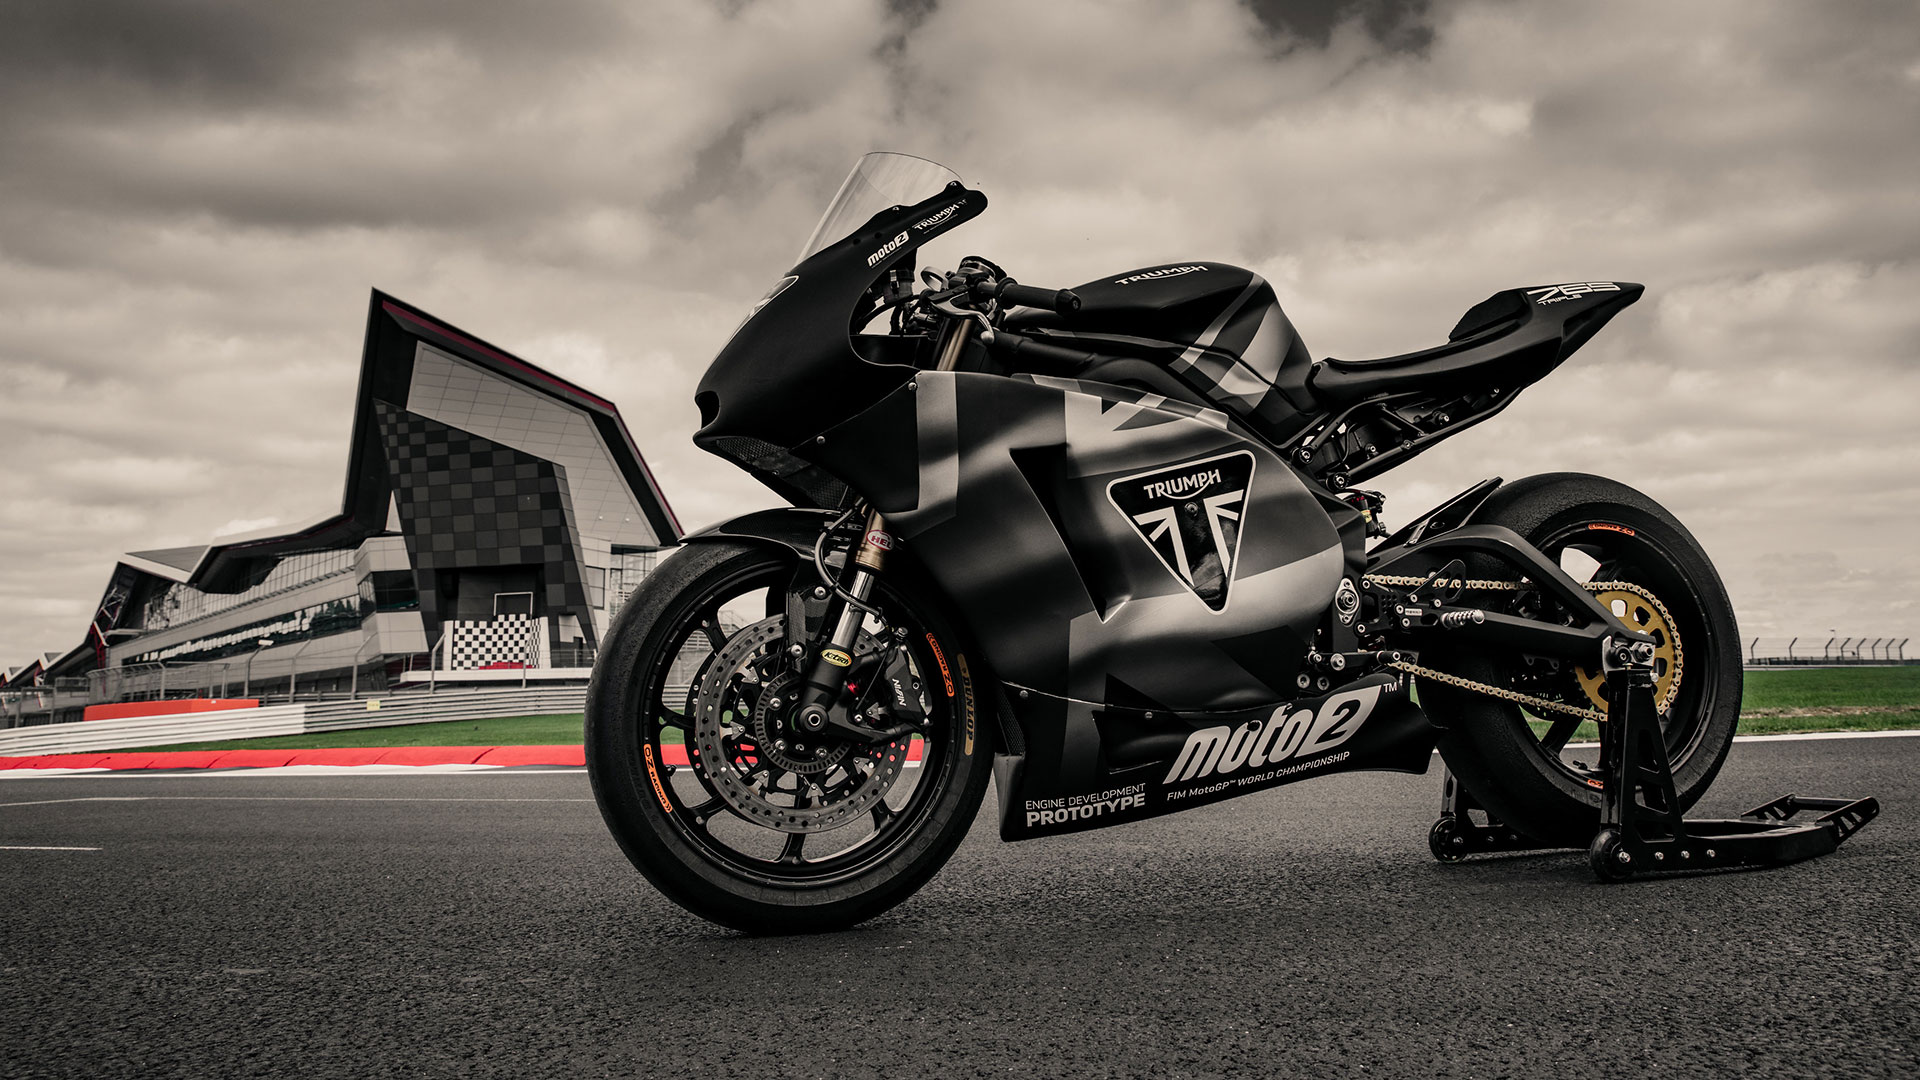 Moto2 bike with Triumph branding on track